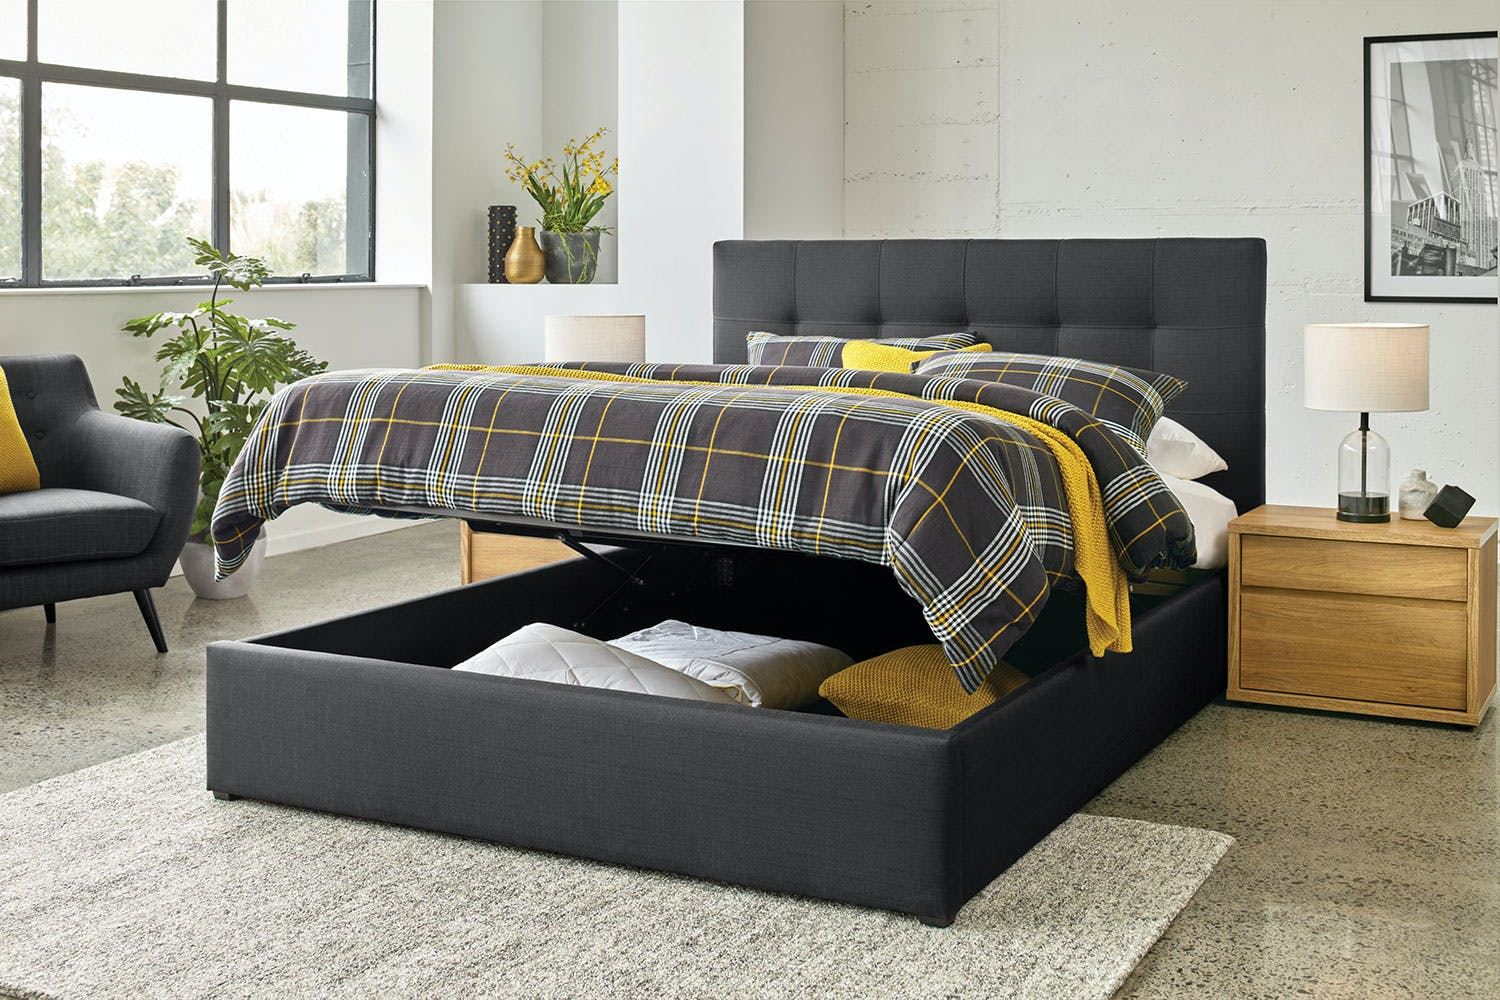 Fantastic Hudson Queen Bed Frame With Gas Lift Storage By Nero Furniture Gamerscity Chair Design For Home Gamerscityorg